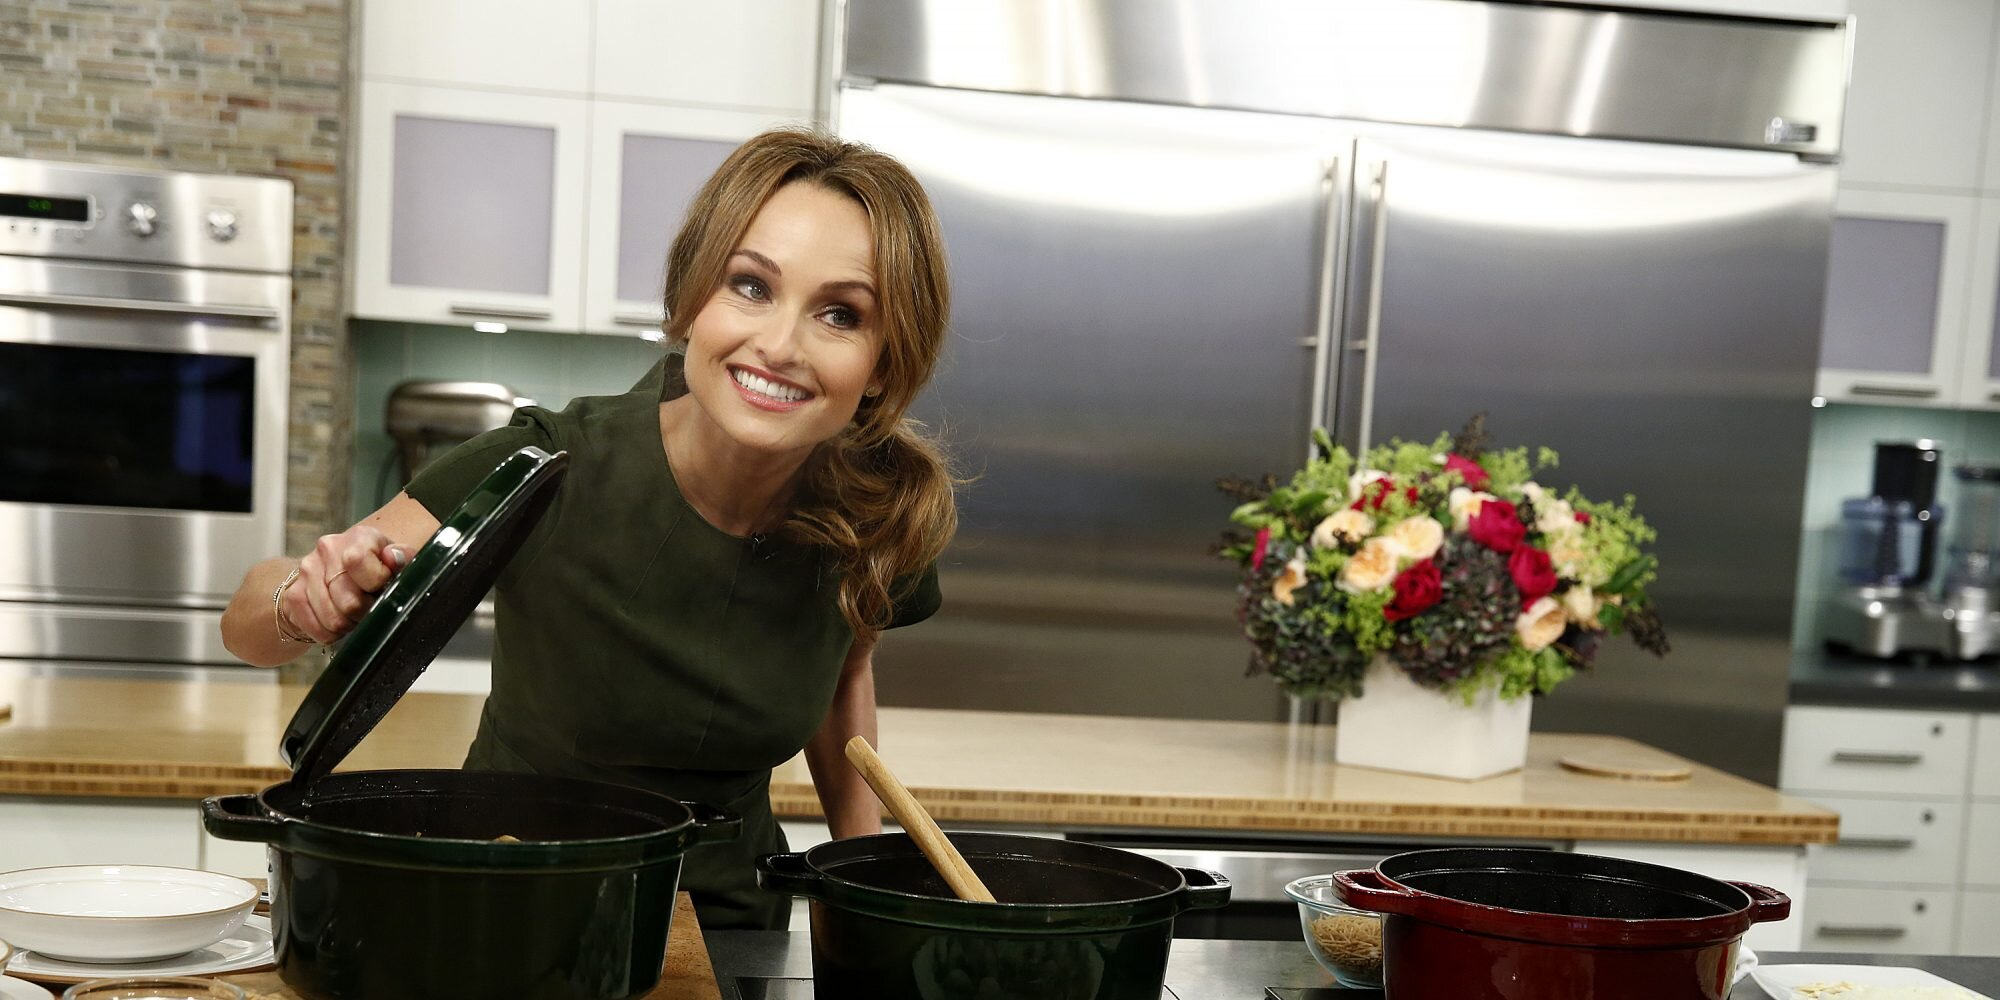 Giada De Laurentiis' Simple Trick for Flavorful Pork Chops is All About the Sauce